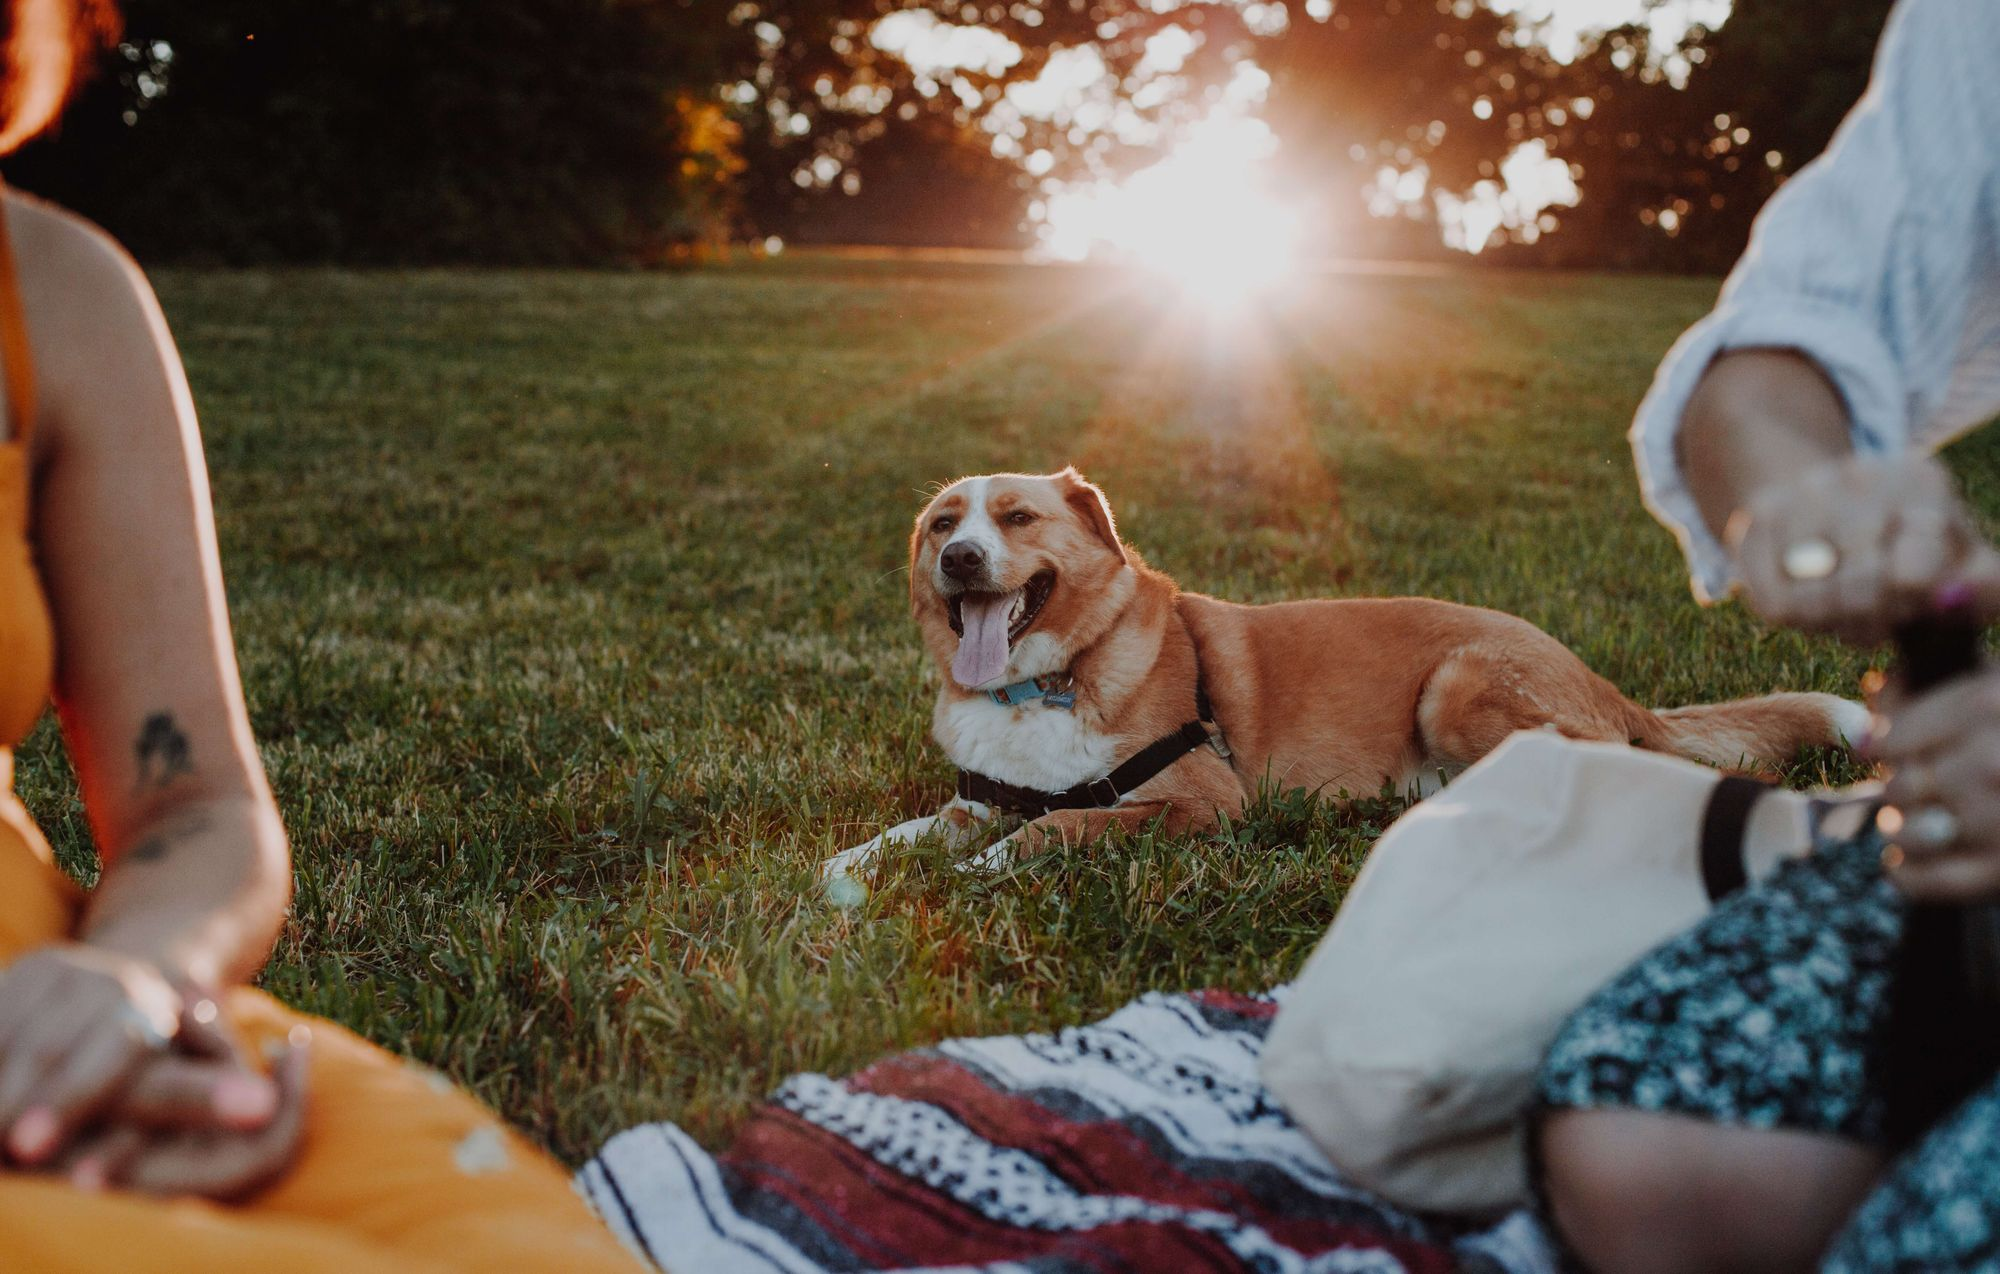 mixed-breed-dog-lounges-at-an-outdoor-picnic-in-the-late-summer-sun